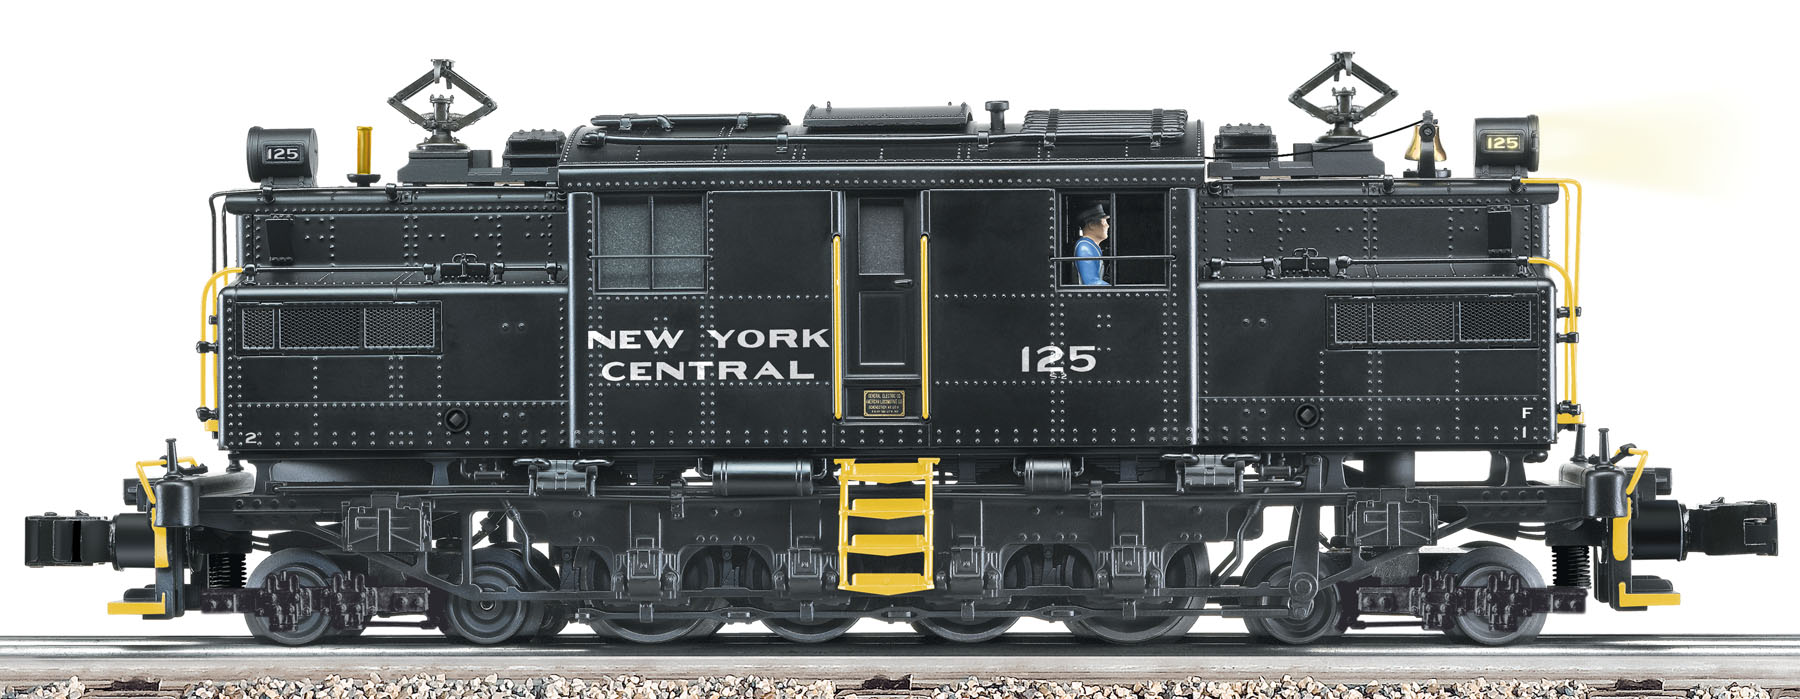 hight resolution of new york central tmcc s 2 electric 125 lionel 1033 transformer wiring diagram lionel tmcc wiring diagram